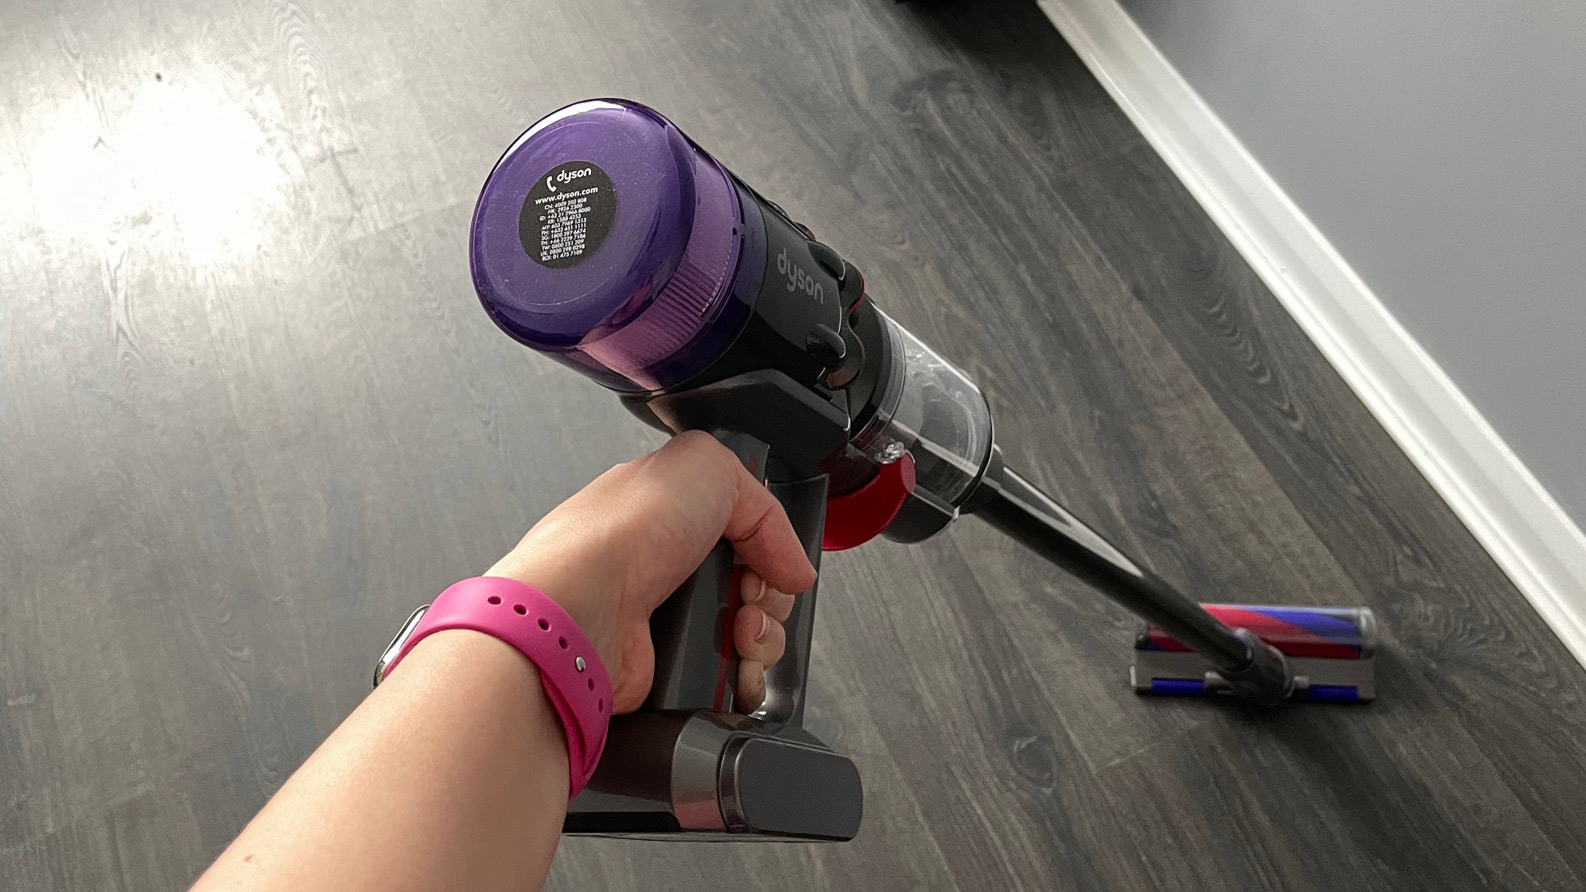 Dyson Micro 1.5kg being used to clean hard wood floors